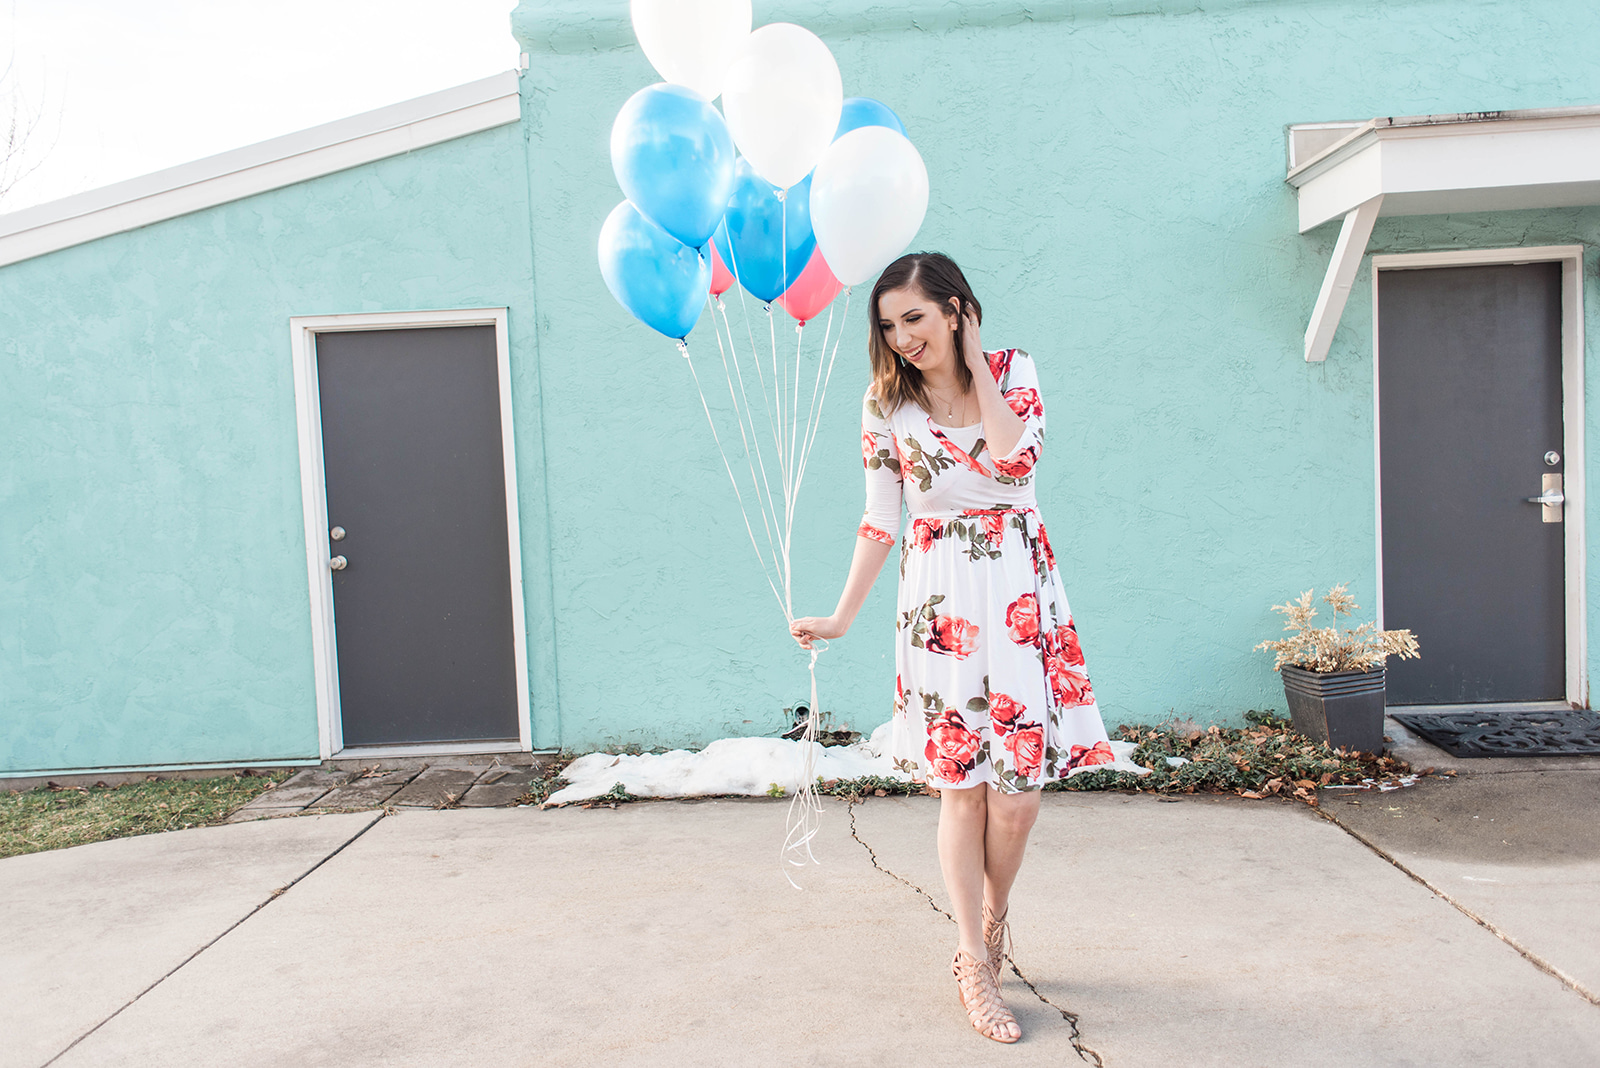 Floral Spring Dress - cute spring dress idea // Hey There, Chelsie